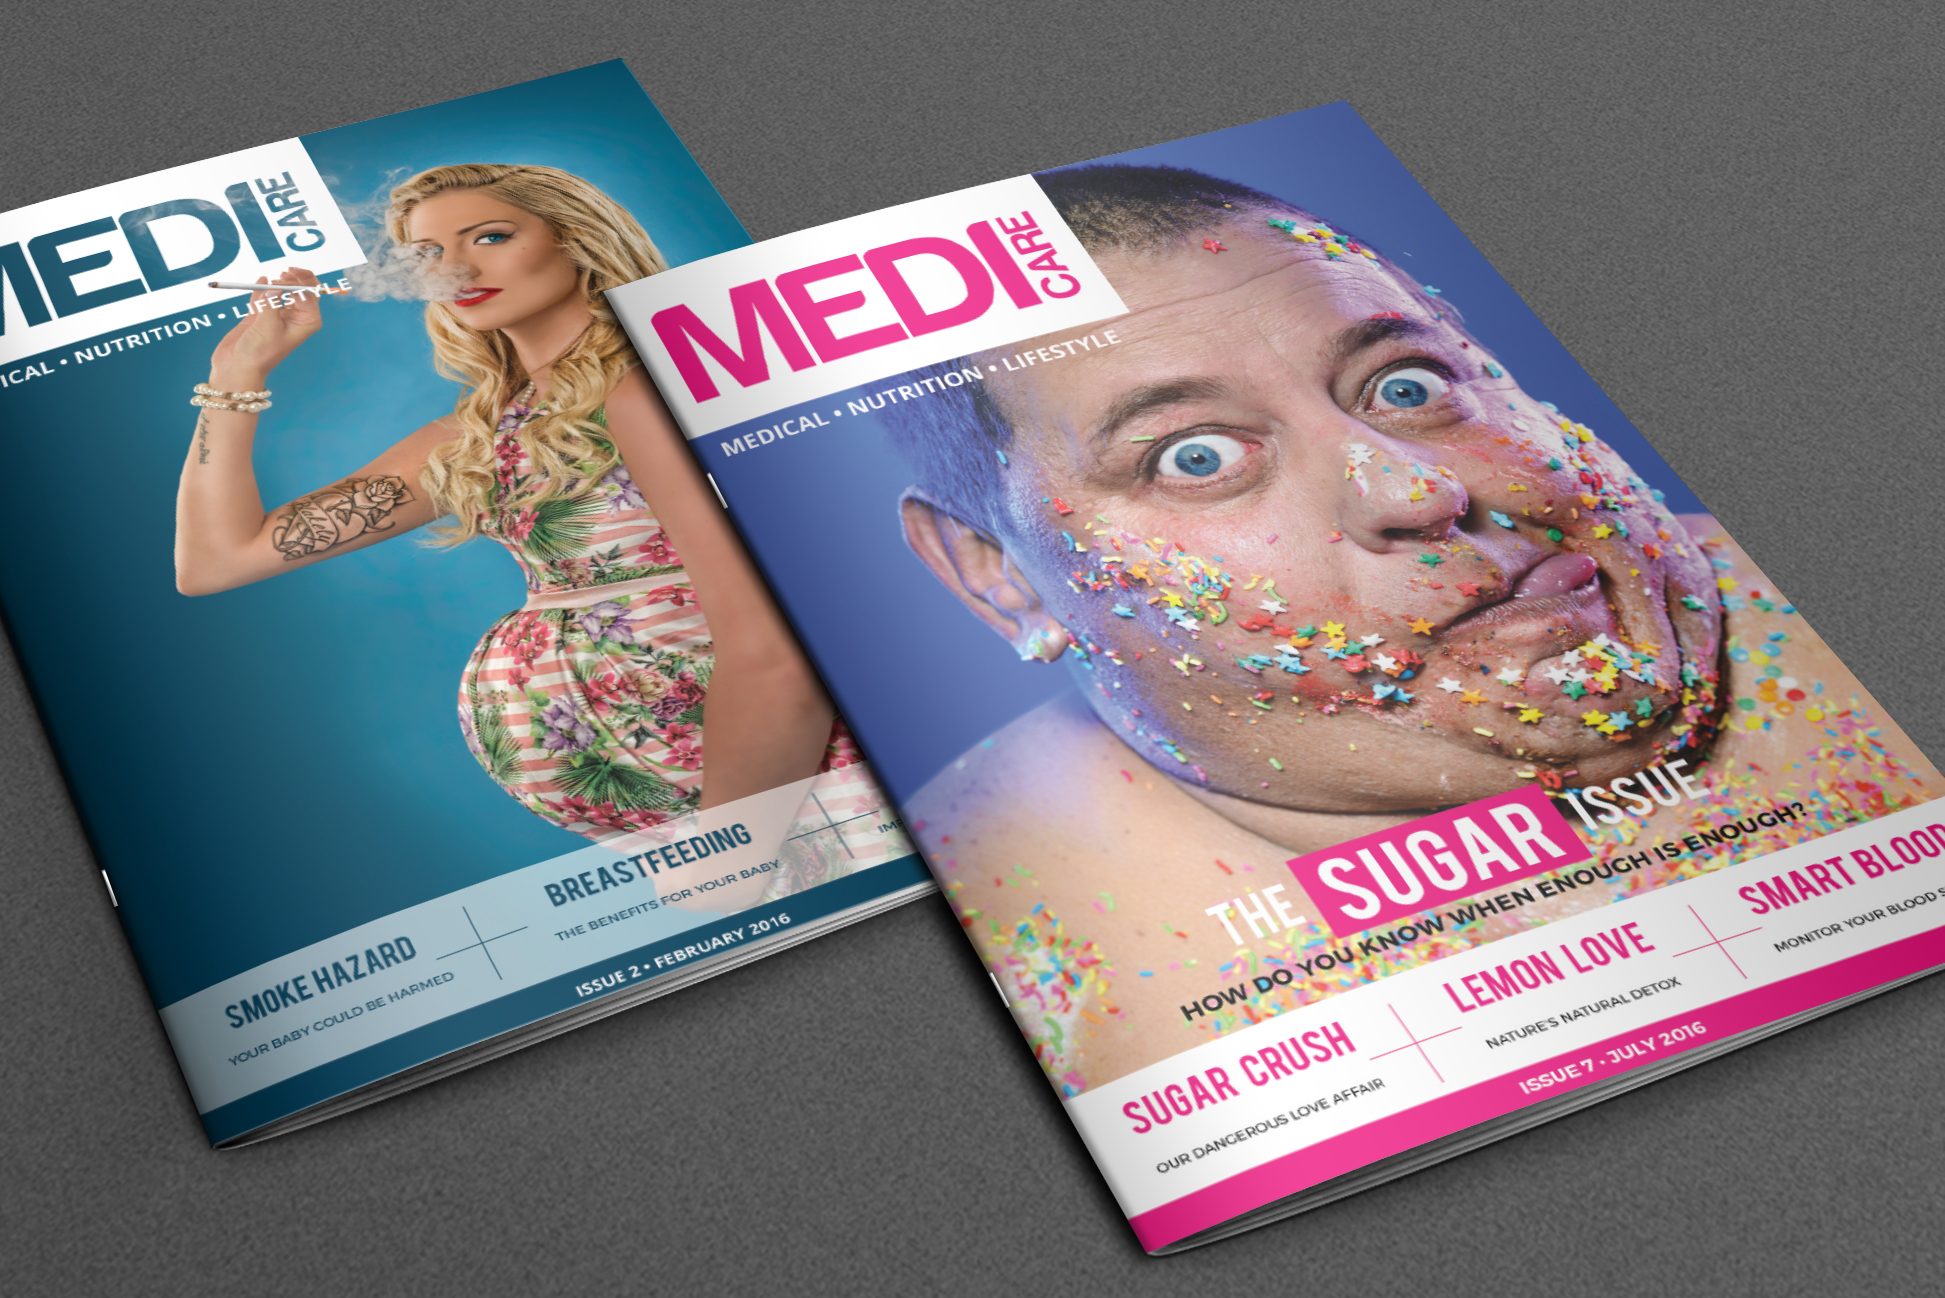 medicare-magazine-commercial-photography-cover-shoot-brandon-barnard-photographer.jpg